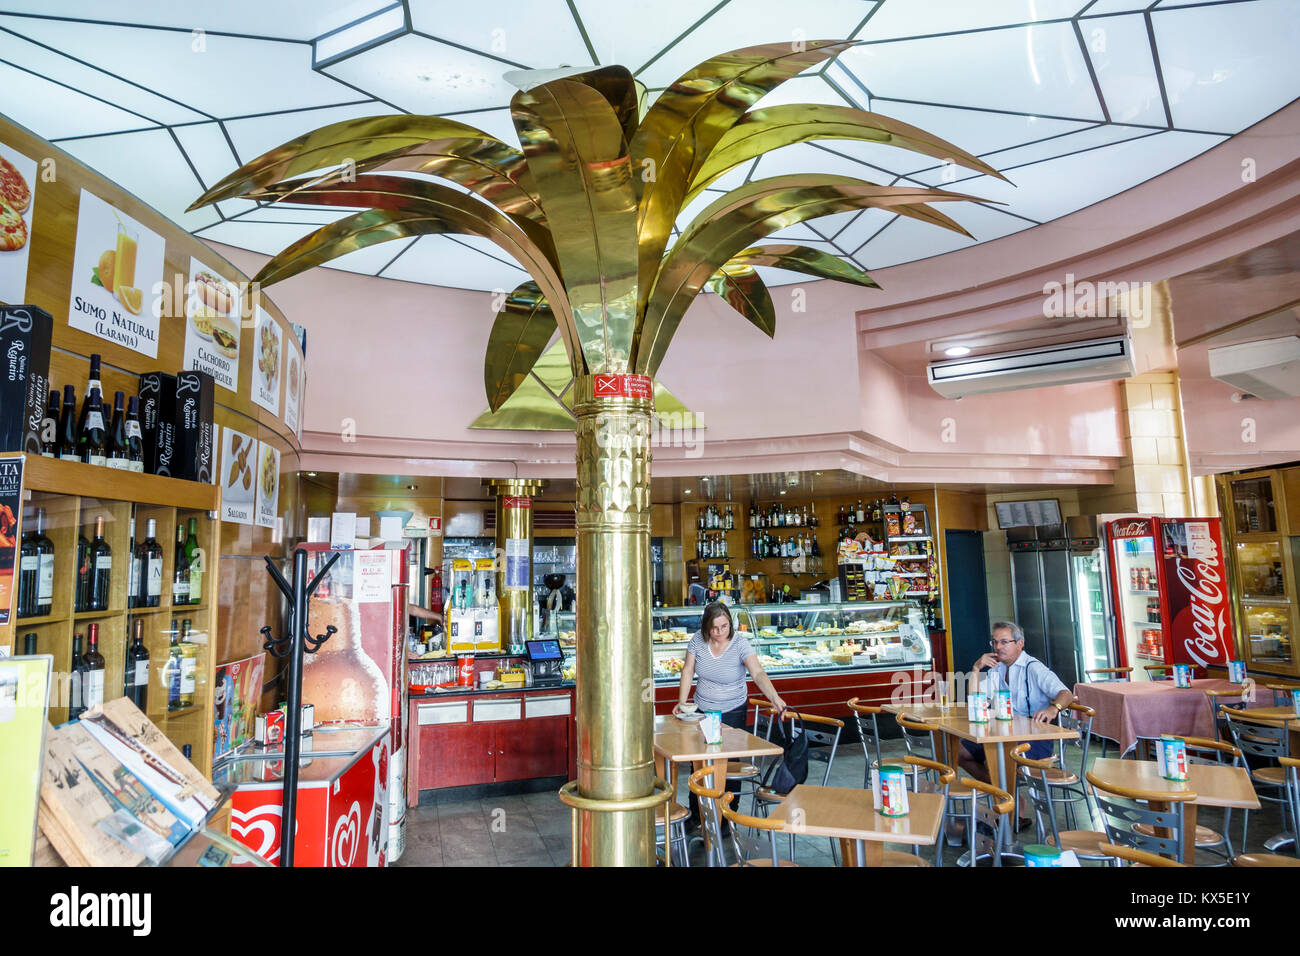 Coimbra Portugal historic center Largo da Portagem main square Cafe Montanha restaurant inside decor metal palm - Stock Image